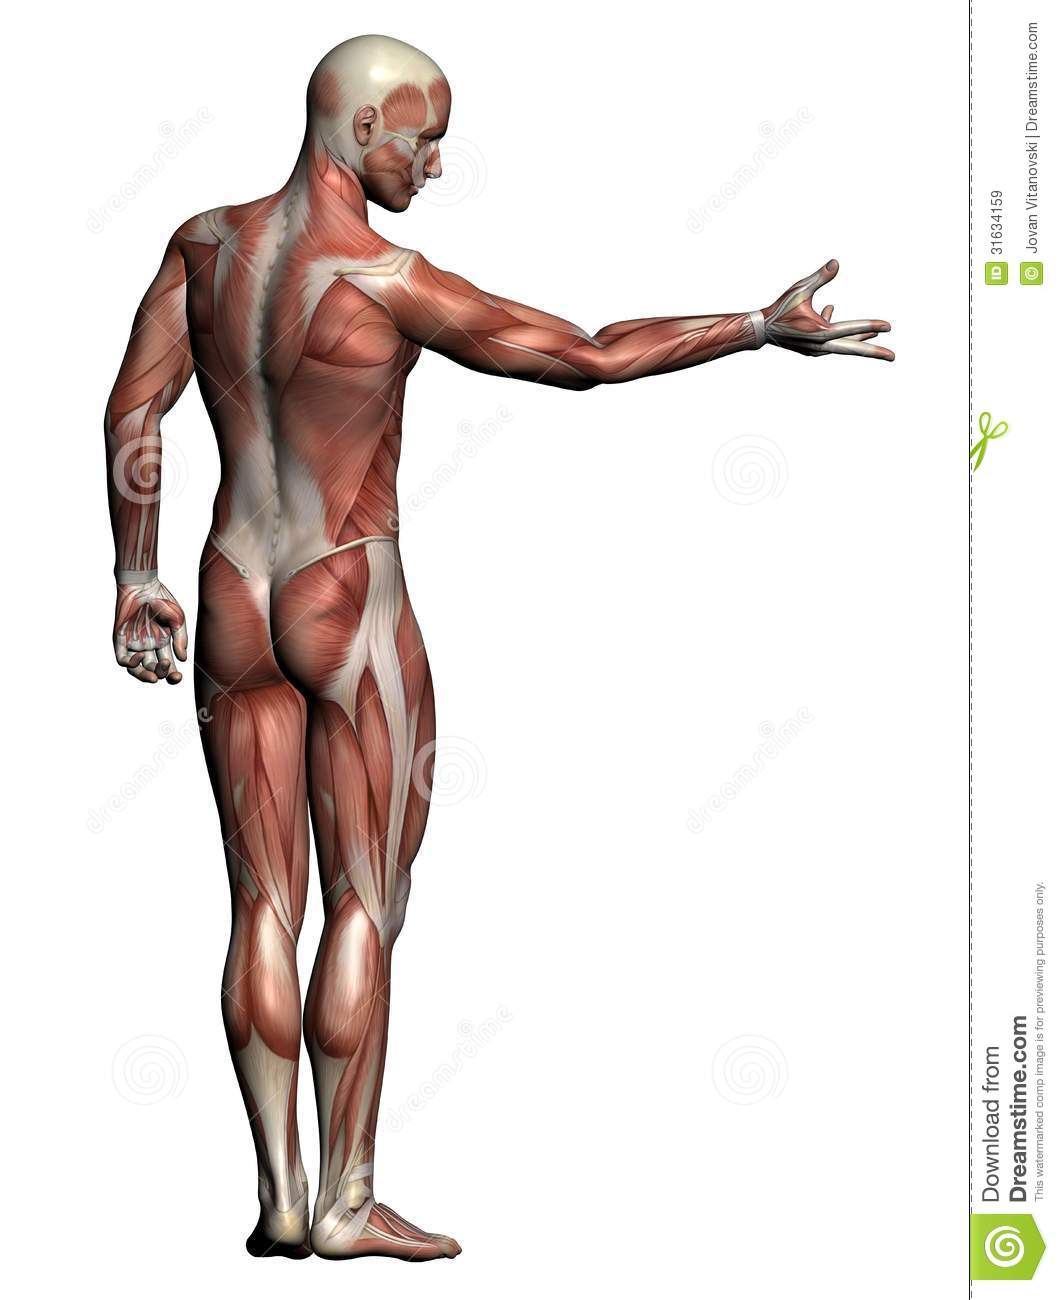 Famoso Free Anatomy Pictures Of The Human Body Fotos - Imágenes de ...